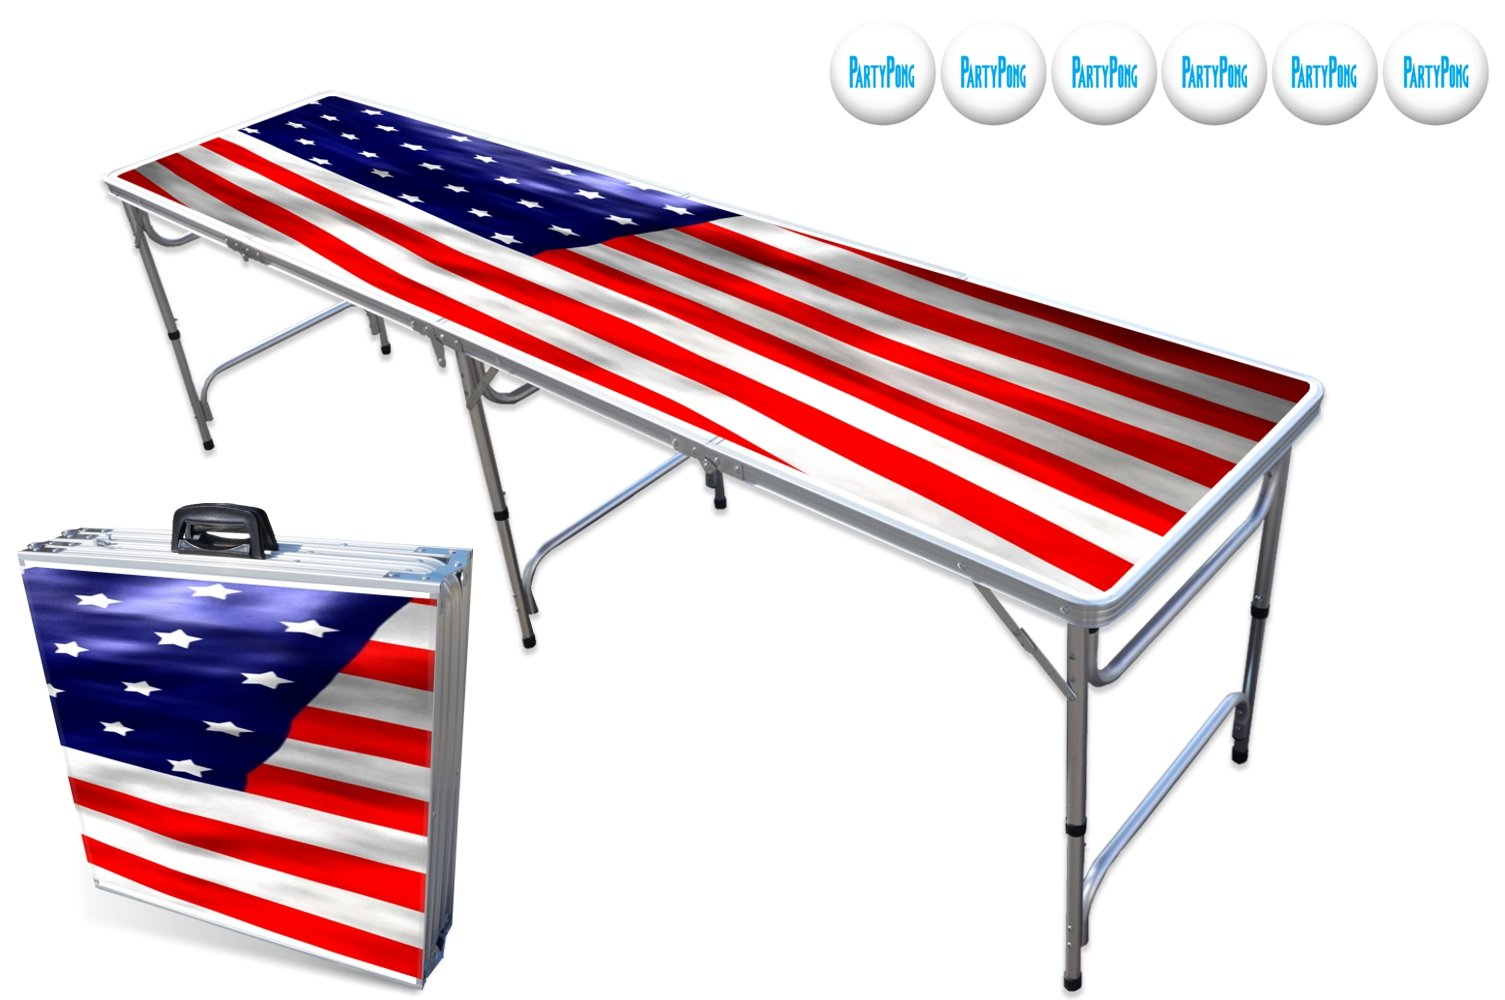 PartyPongTables.com 8-Foot Professional Beer Pong Table - USA Edition by PartyPongTables.com